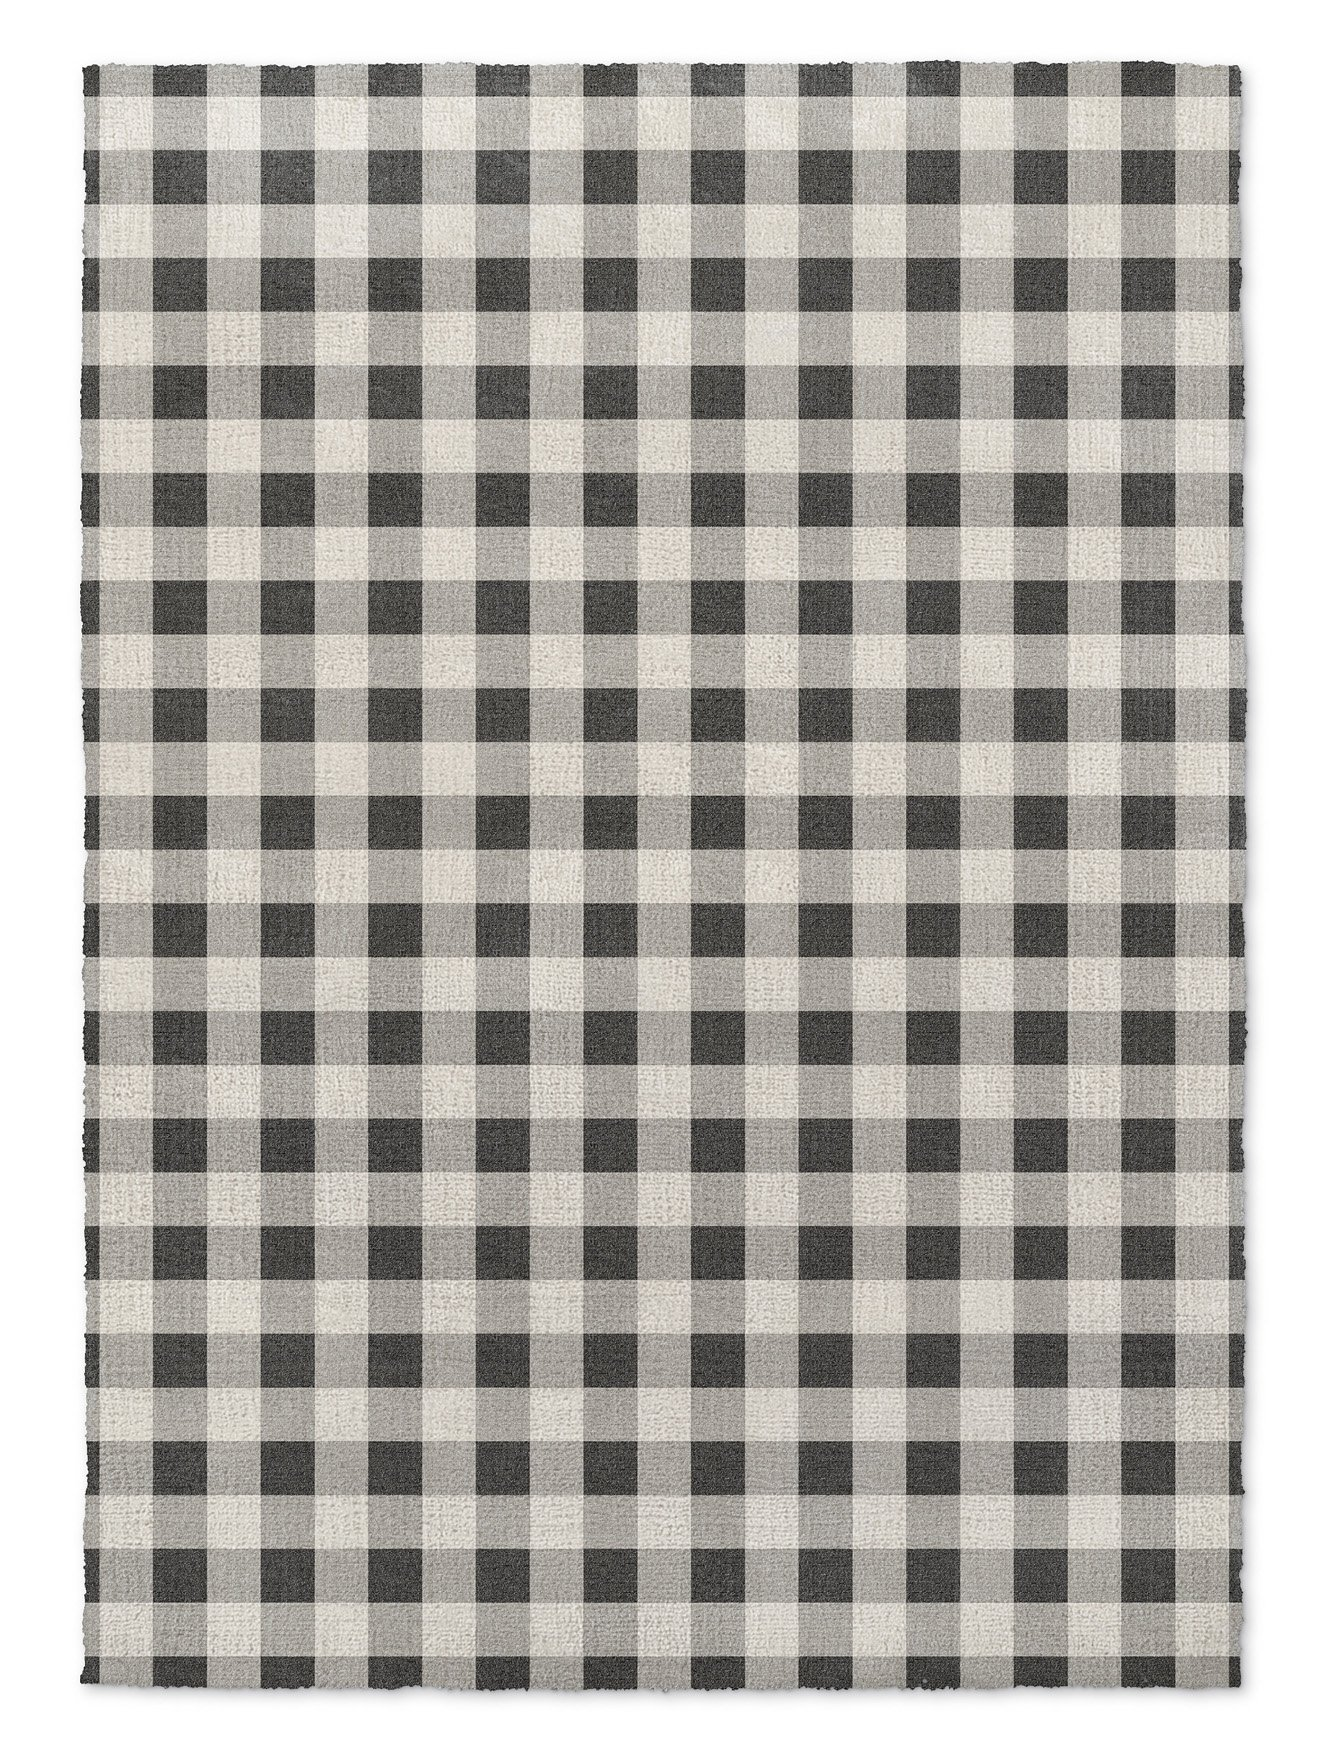 KAVKA Designs BW Gingham Area Rug, (Black/Grey/Ivory) - ENCOMPASS Collection, Size: 3x5x.5 - (MGTAVC2140RUG35)